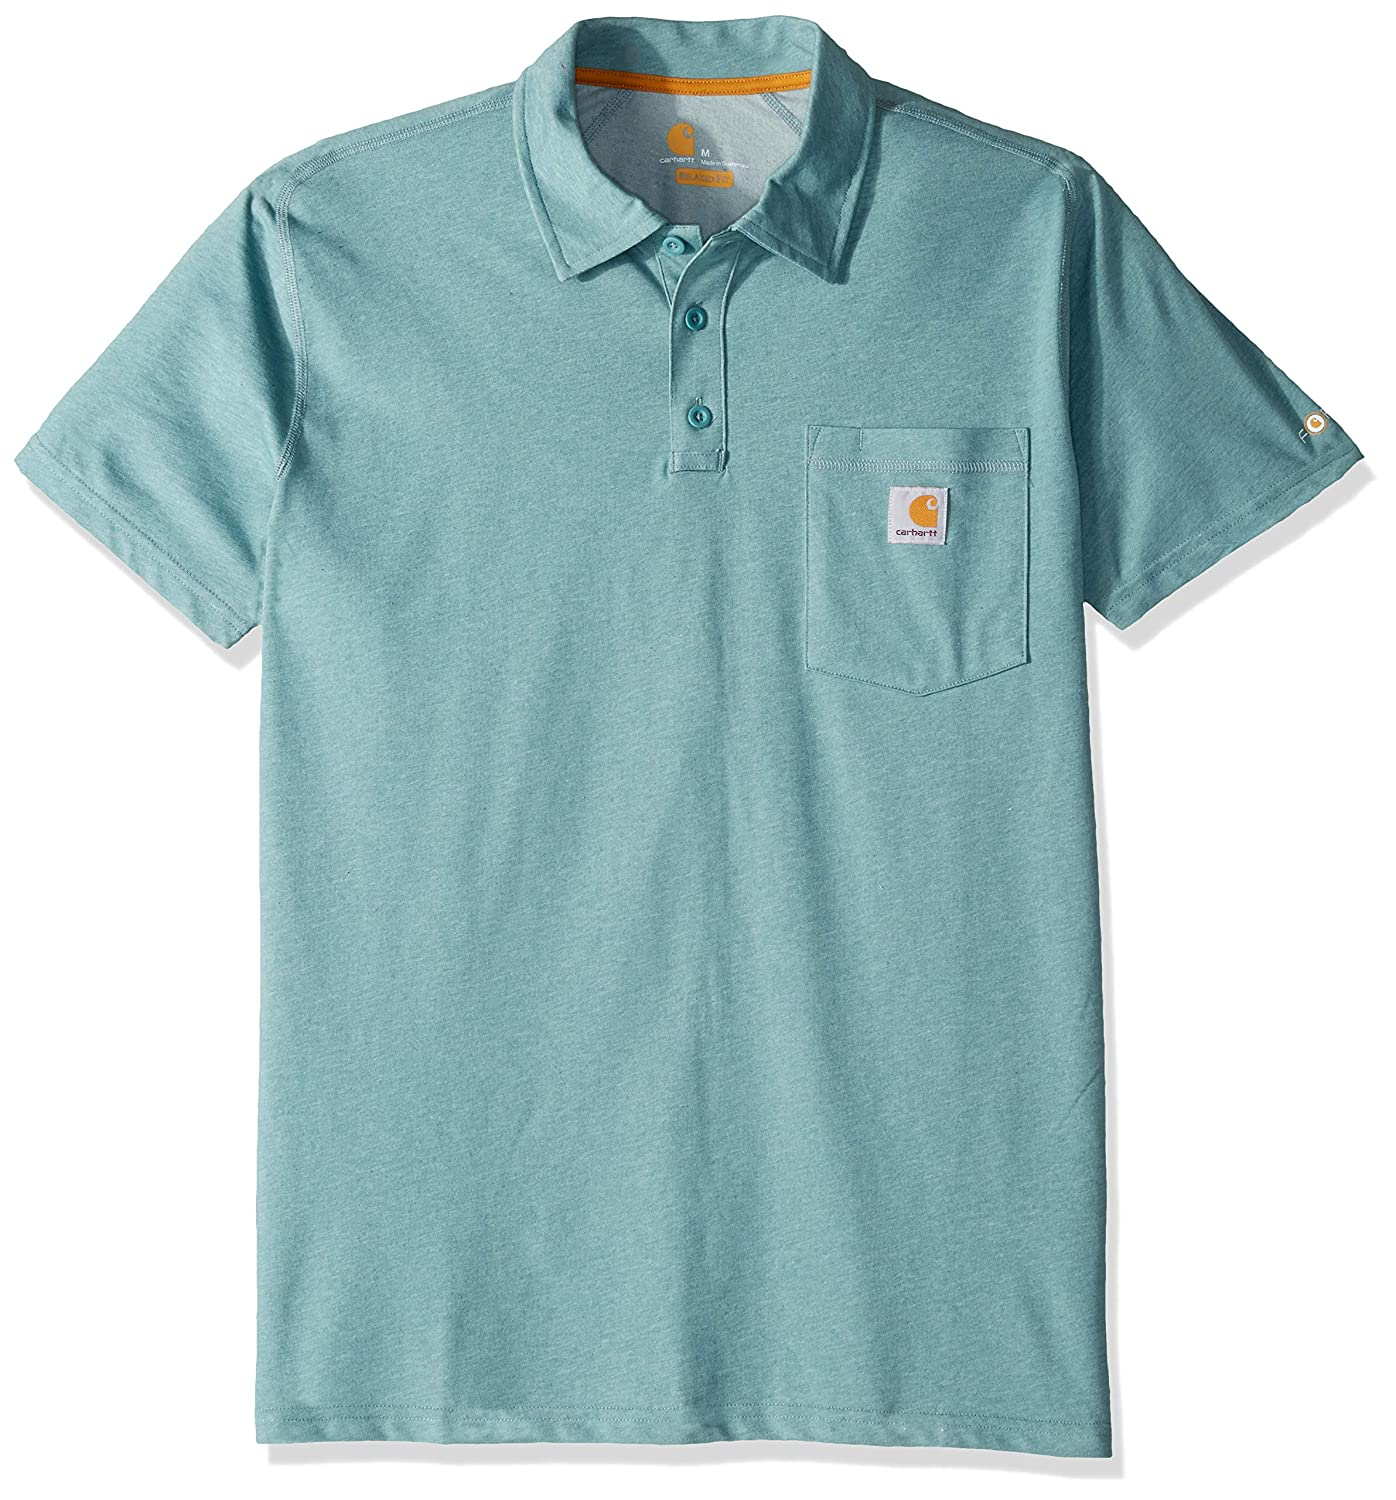 Carhartt Men Polo Shirt Force Cotton Delmont Pocket